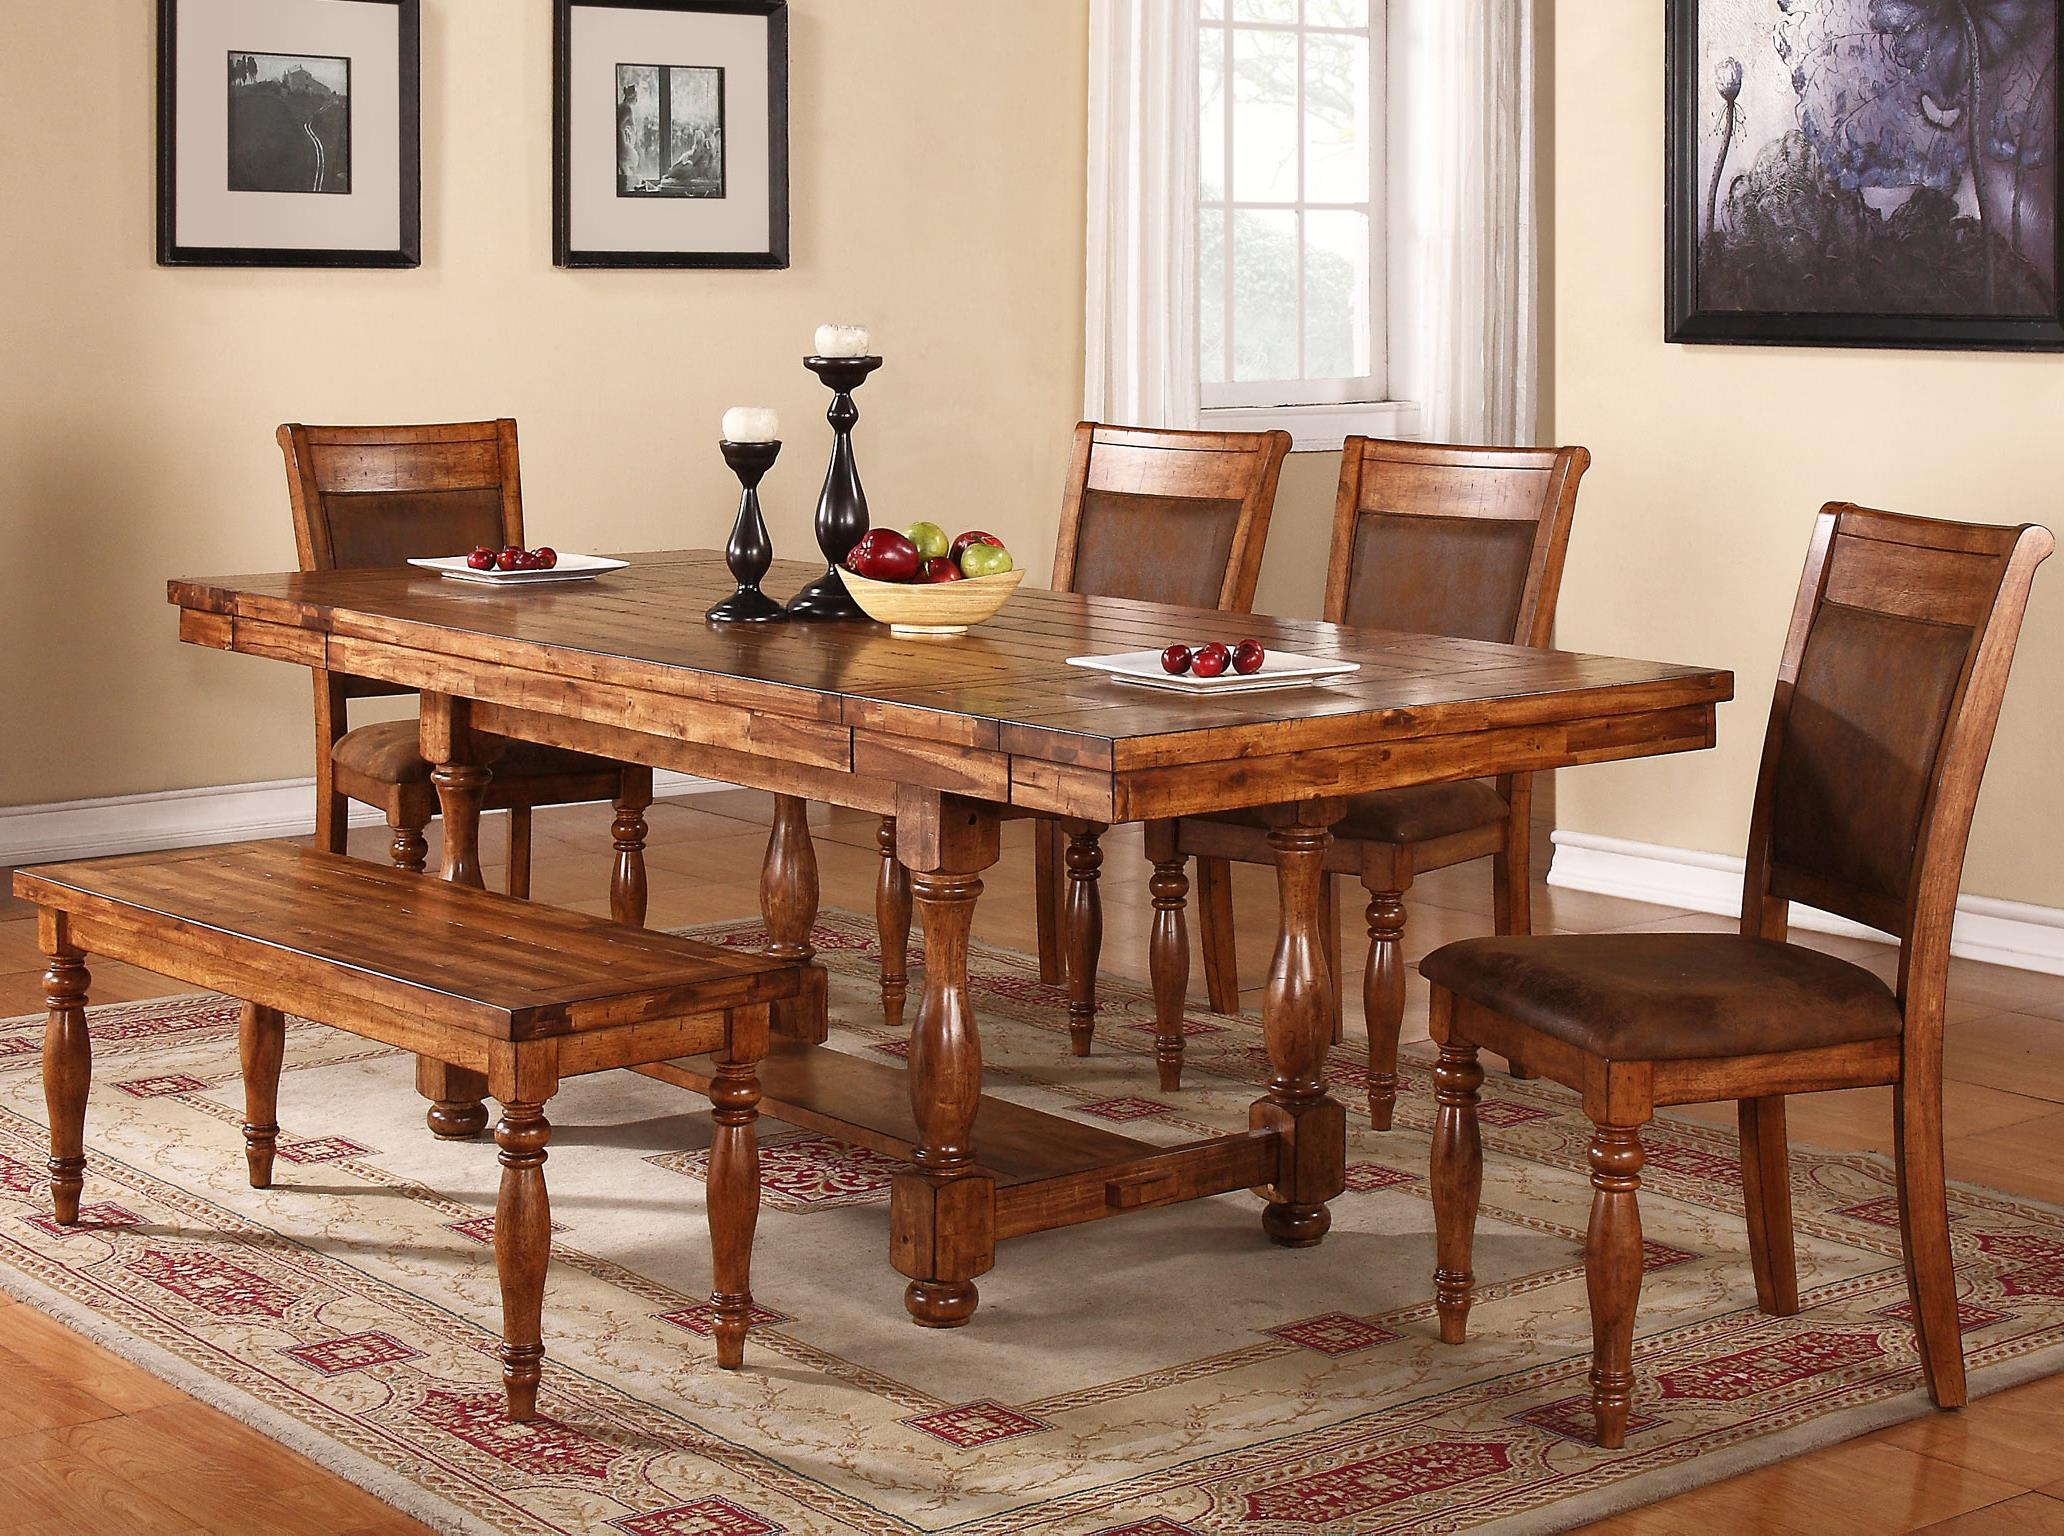 Winners Only Grand Estate 6 Piece Table & Chair Set with Bench - Item Number: DG24092+4x2450S+2455